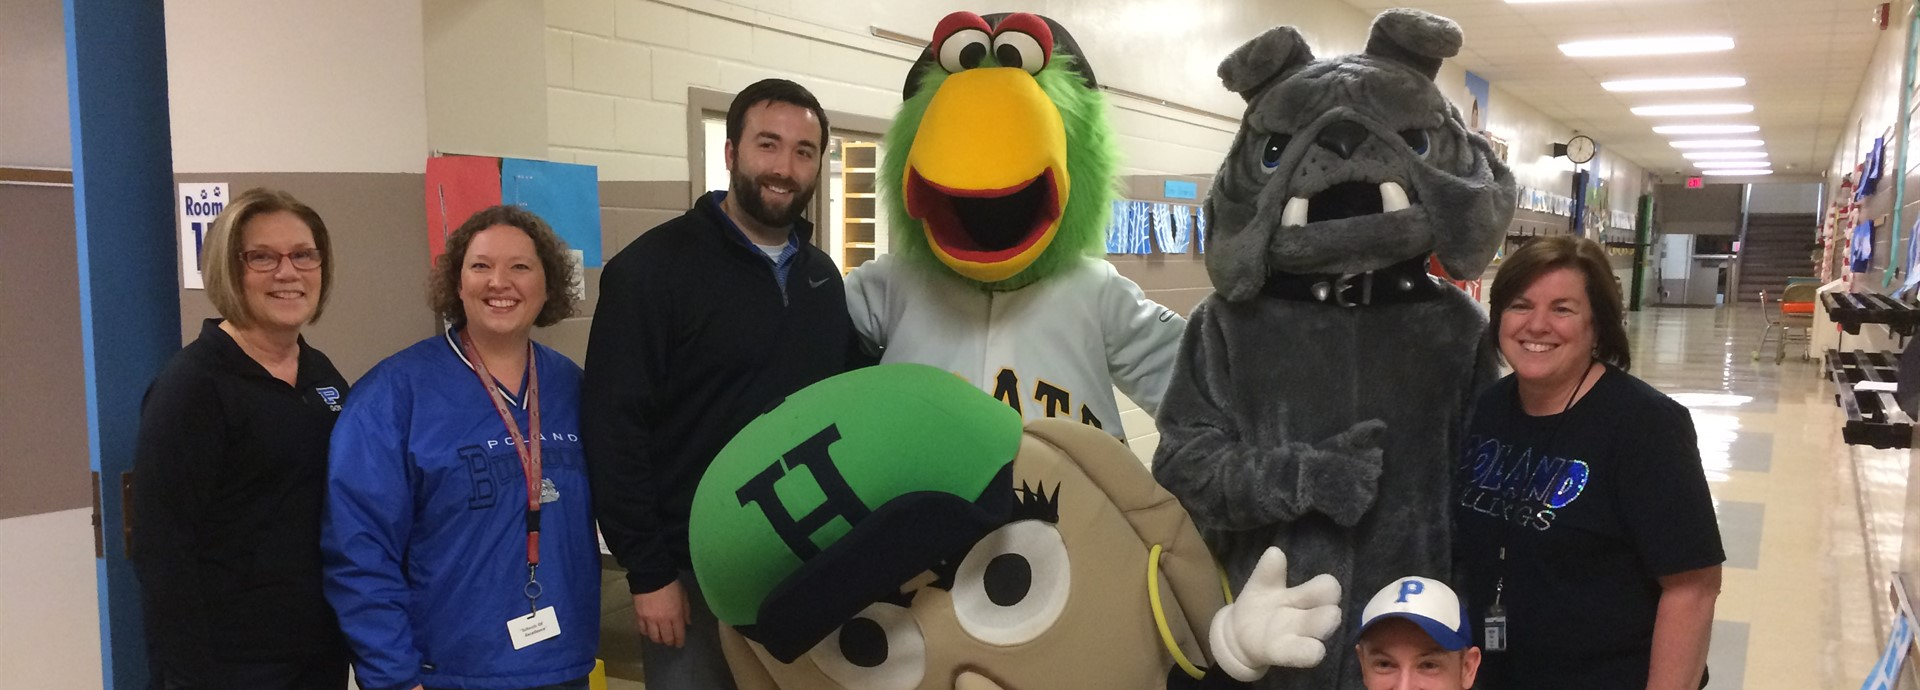 staff with mascots